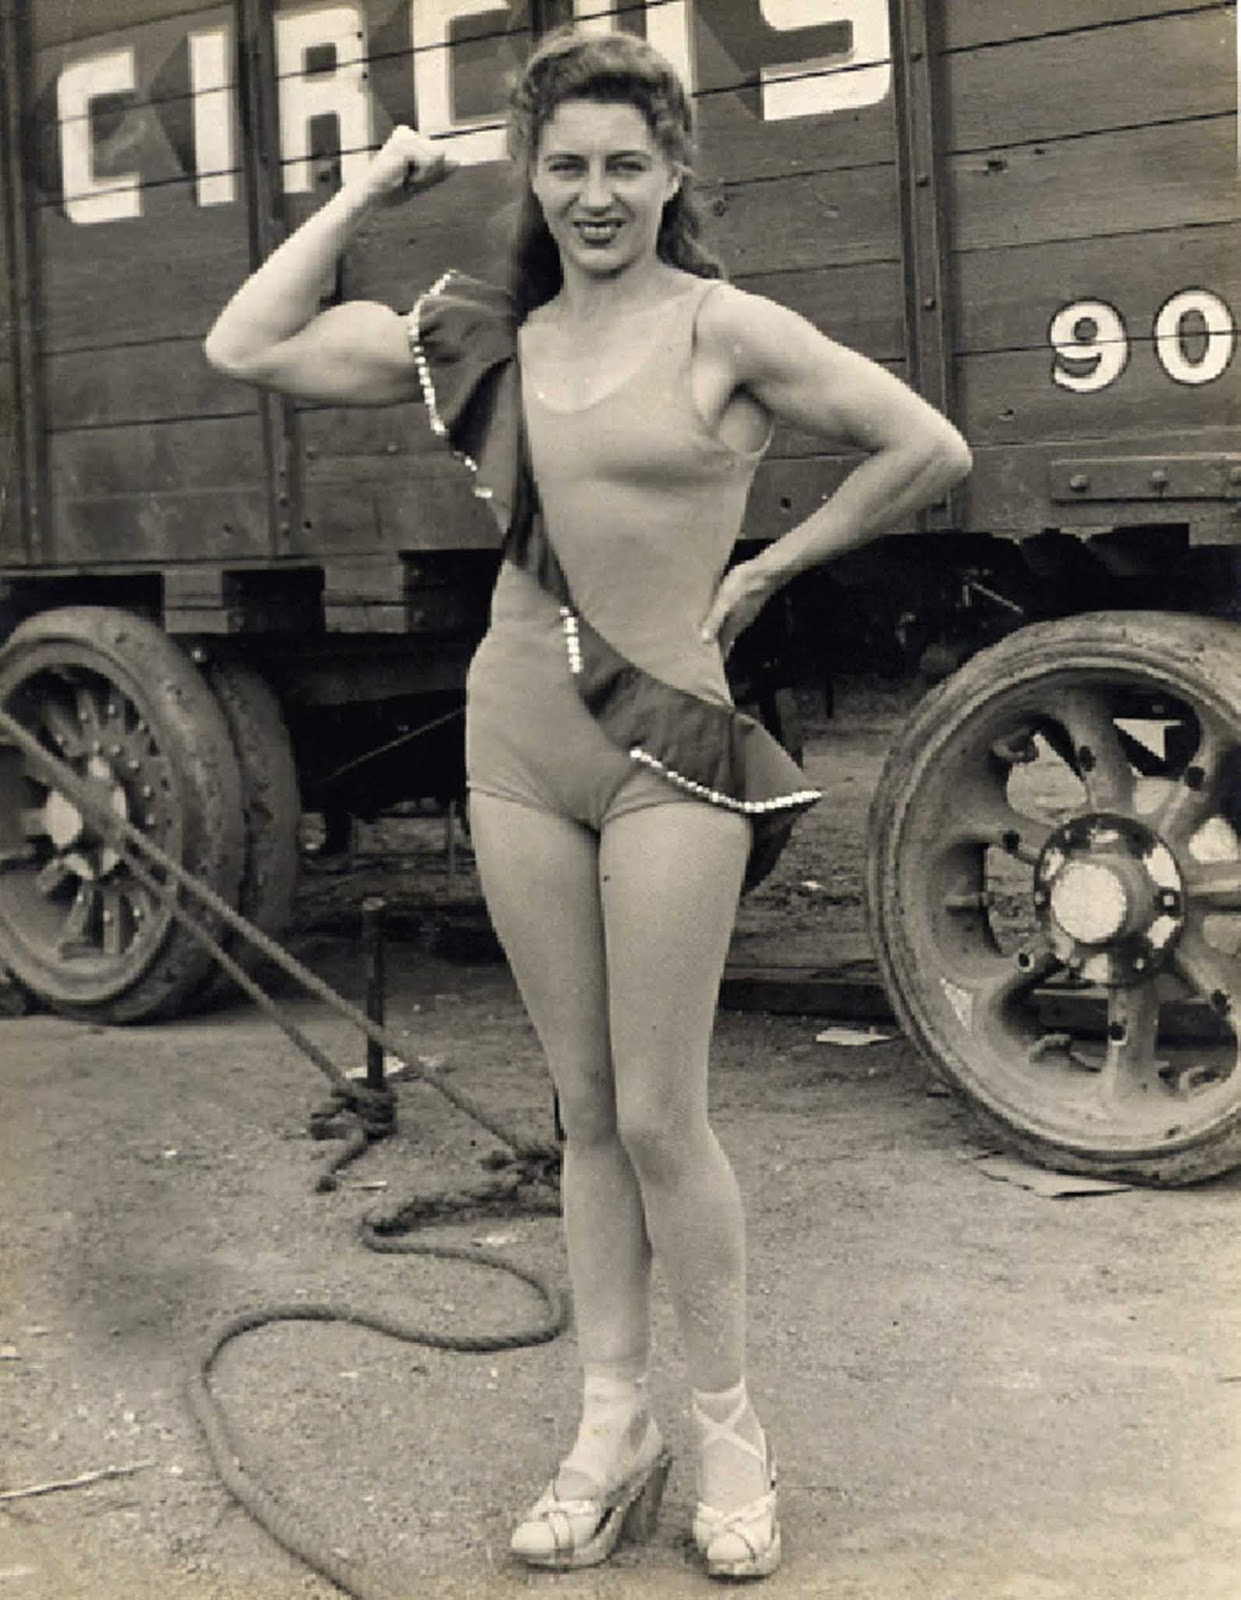 Another vintage circus 'strong woman' flexing for the camera.